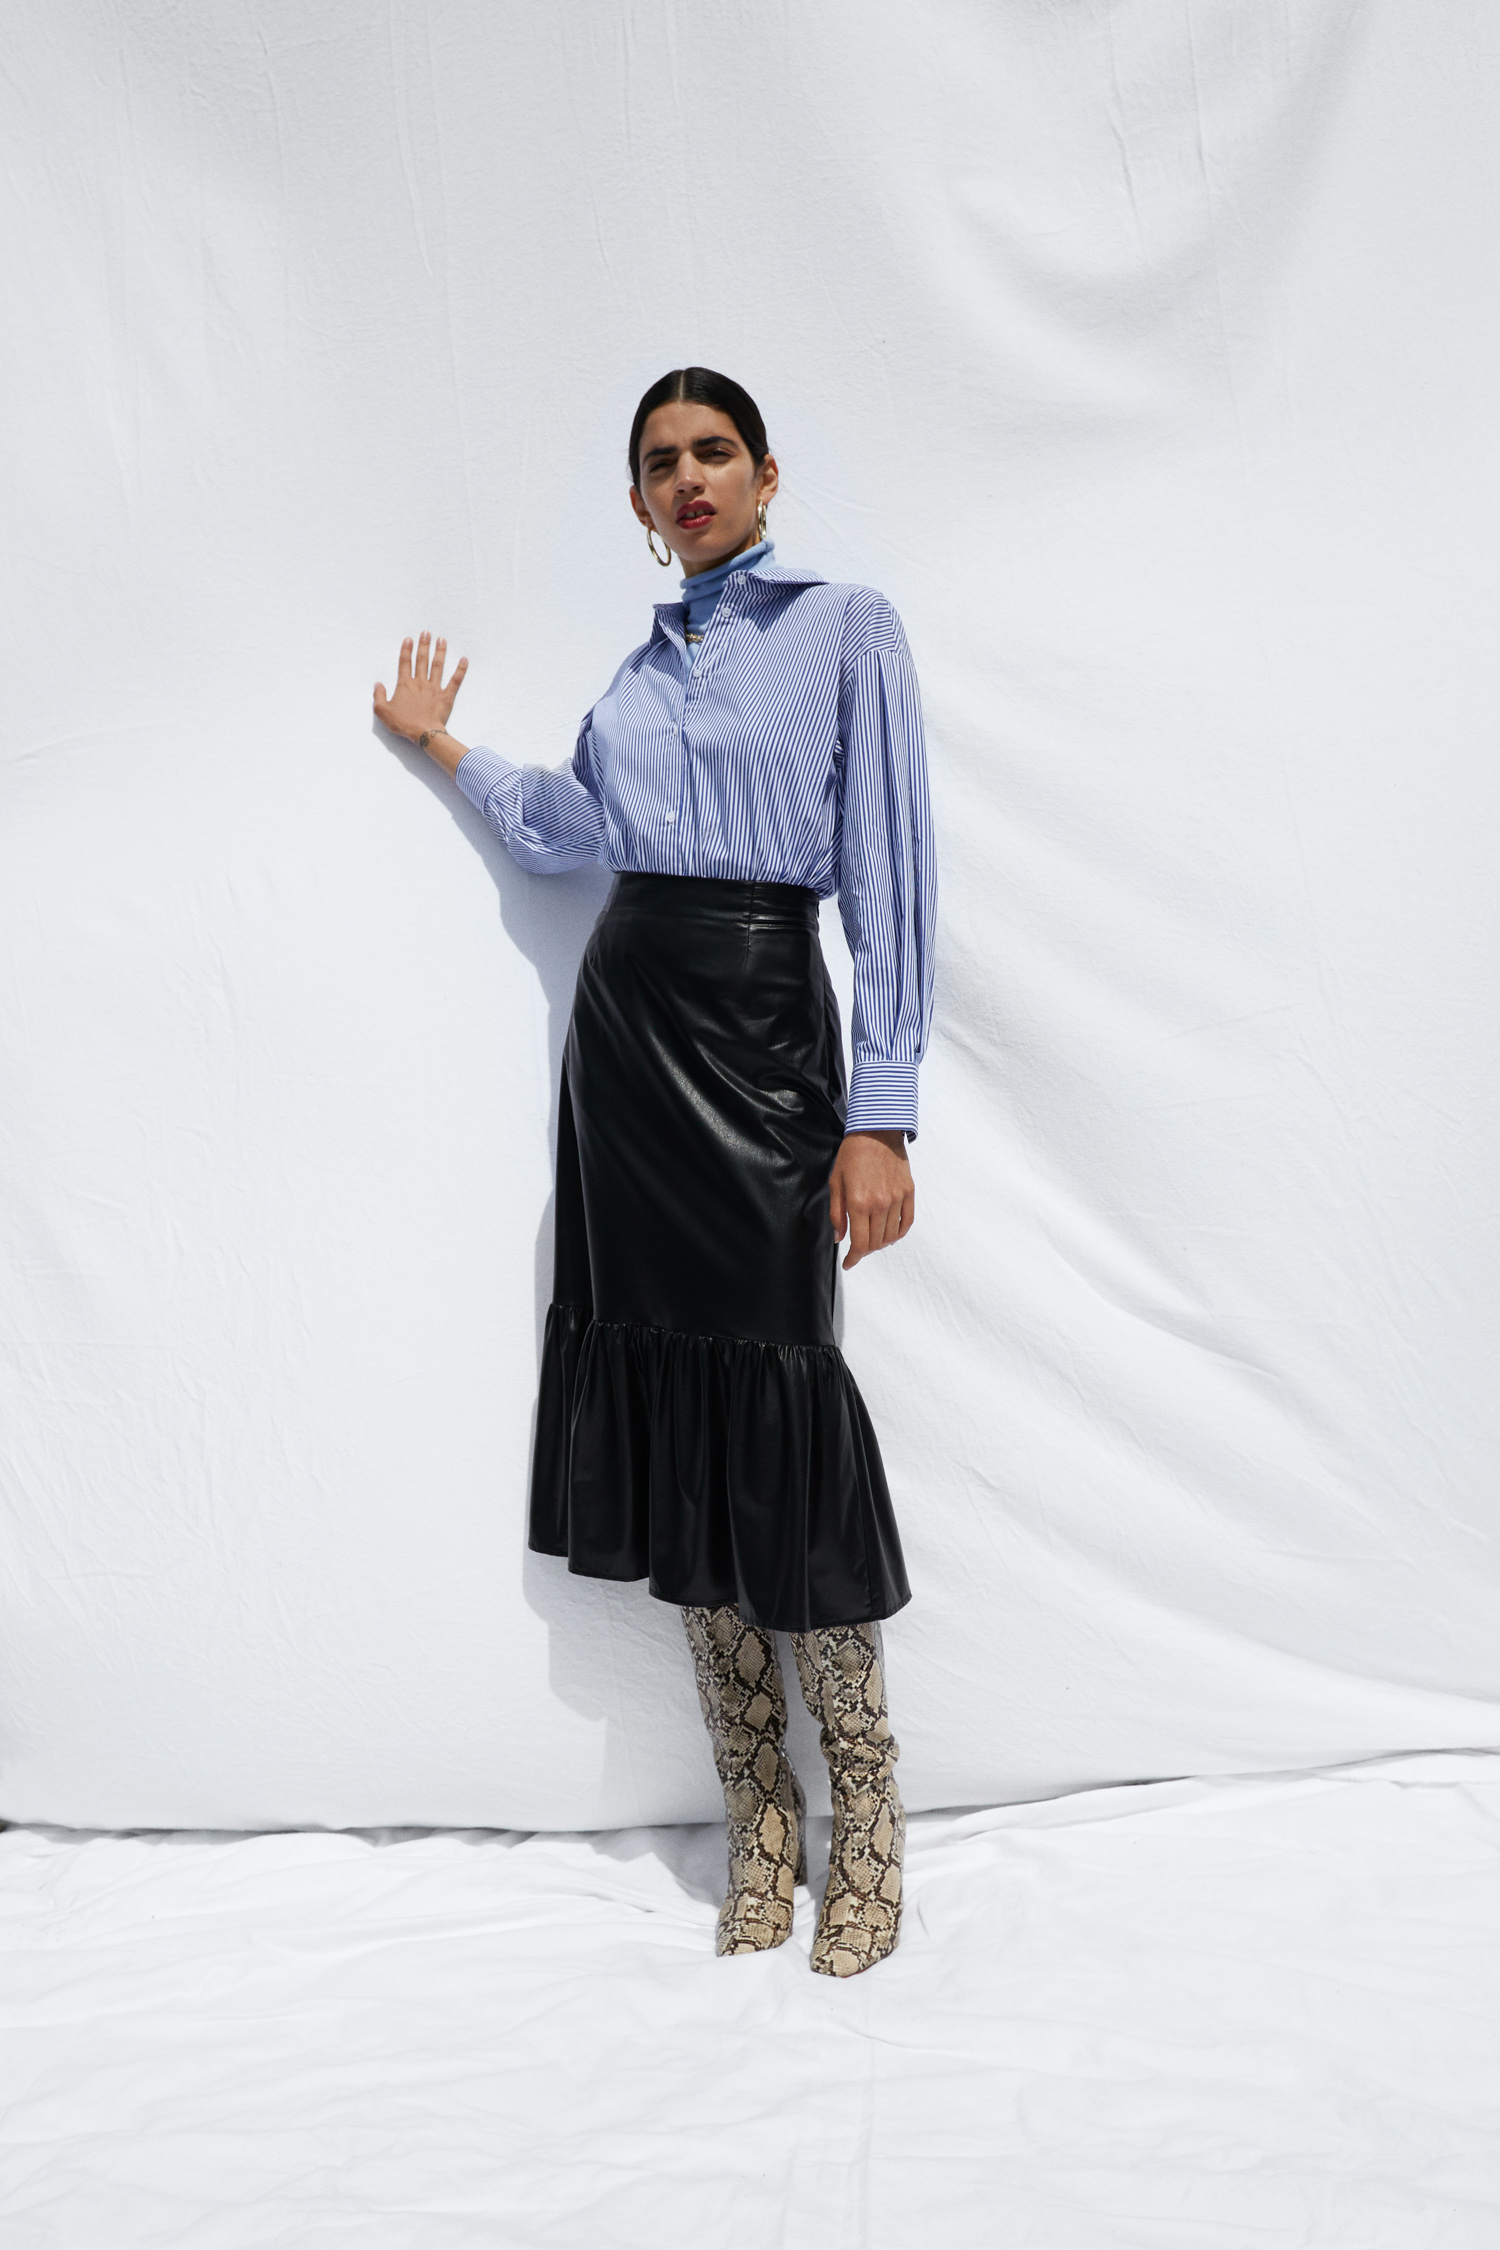 EDT_SS21_Trend_Shirting_Look1_FINAL